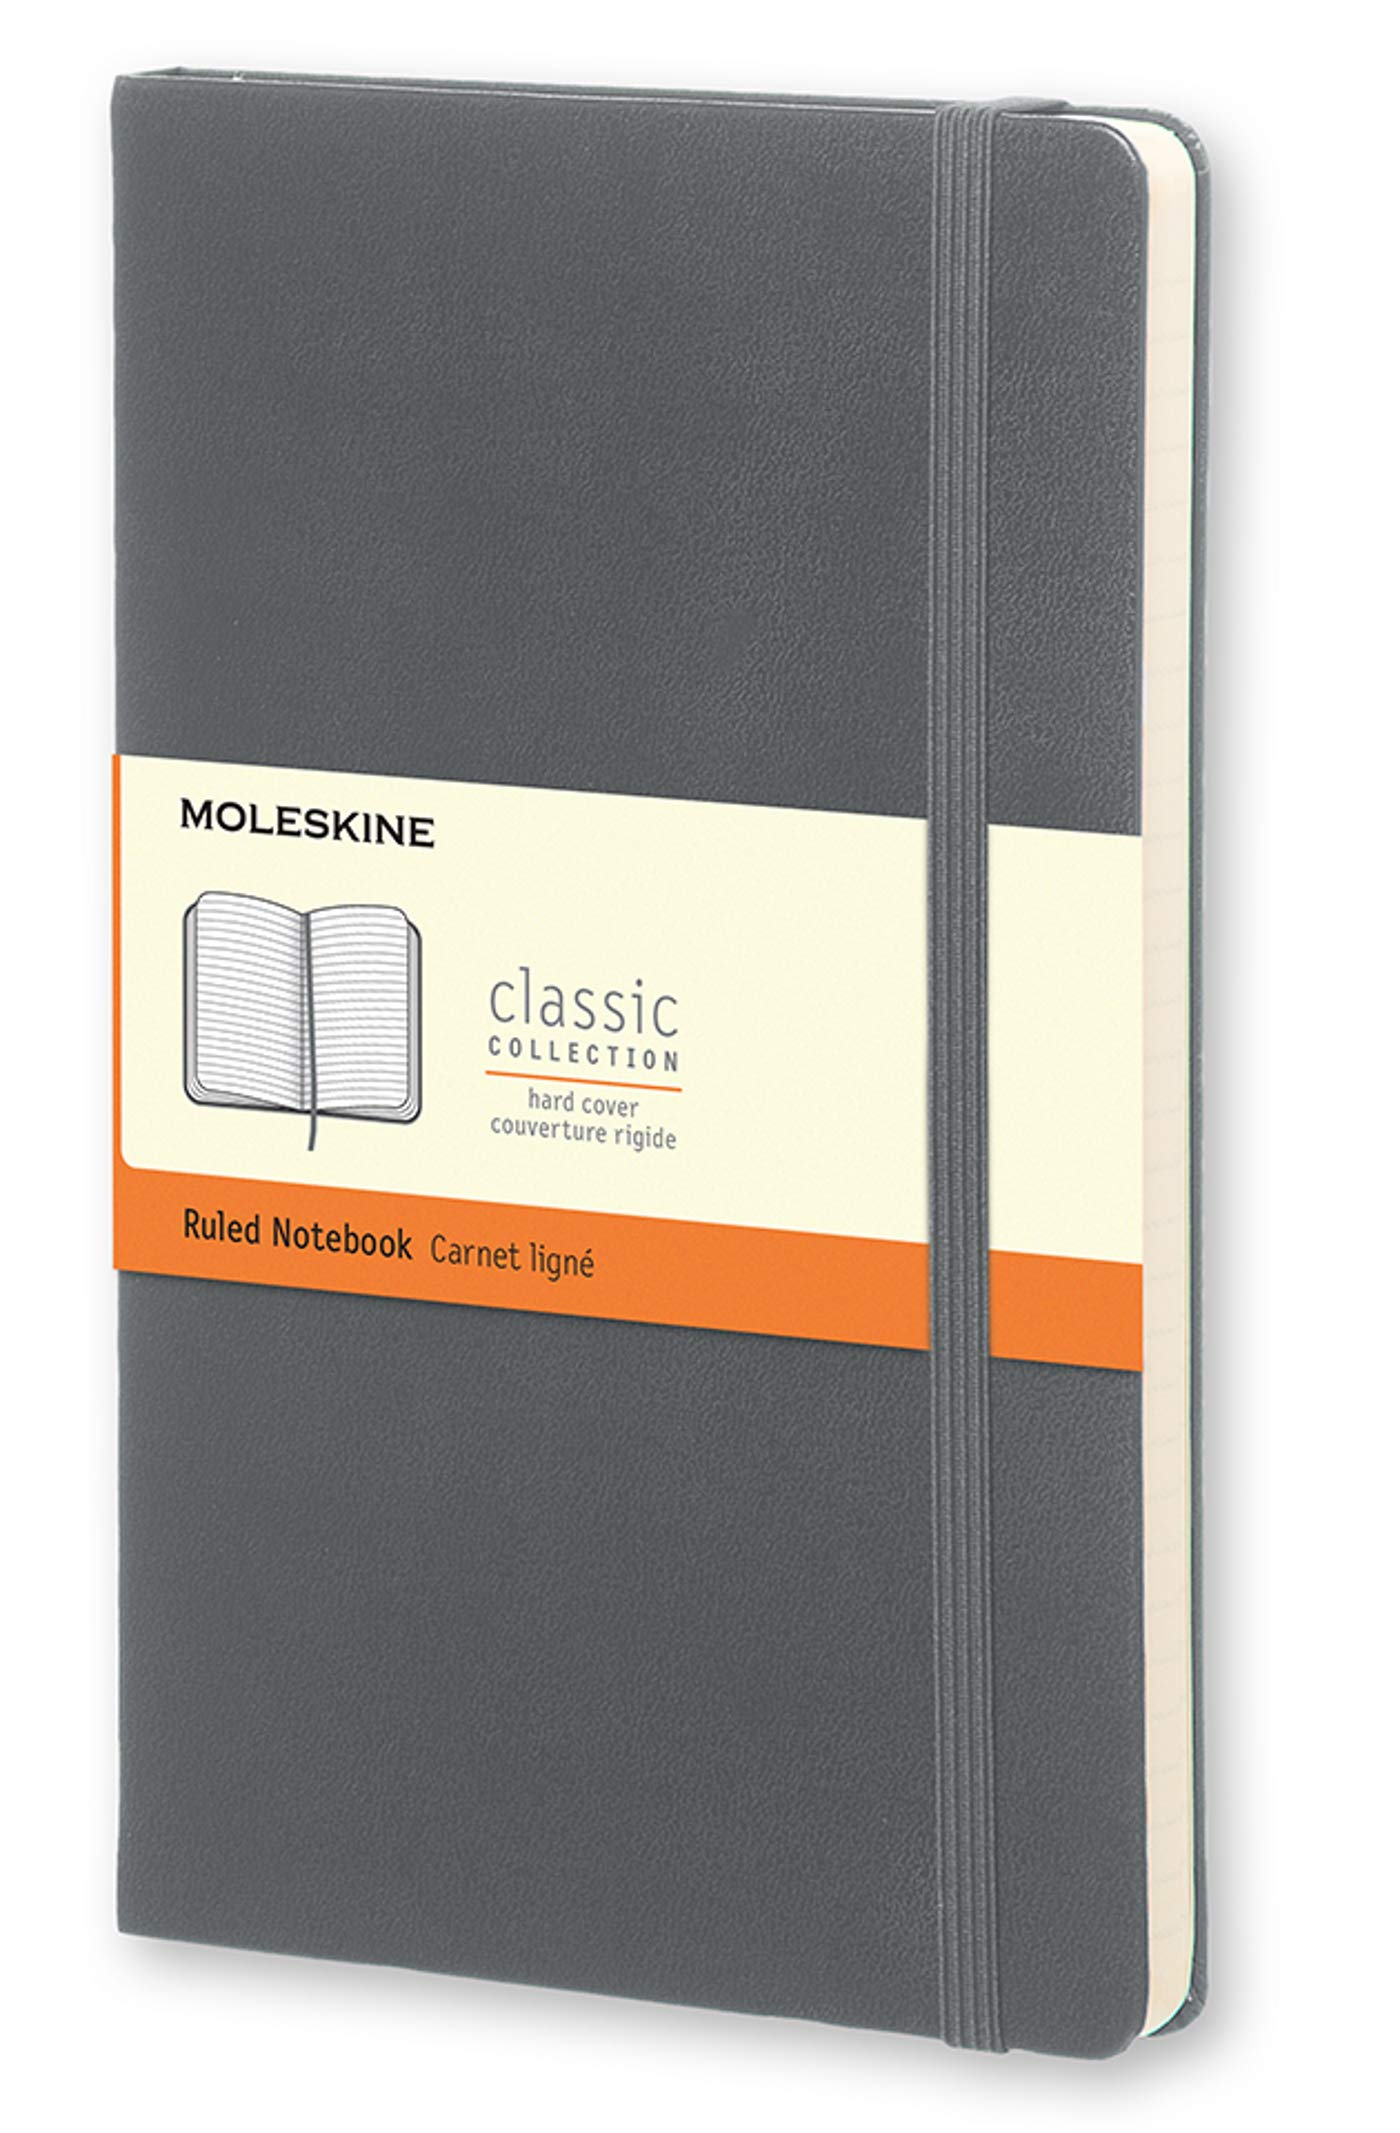 Moleskine Classic Notebook, Hard Cover, Large (5'' x 8.25'') Ruled/Lined, Slate Grey